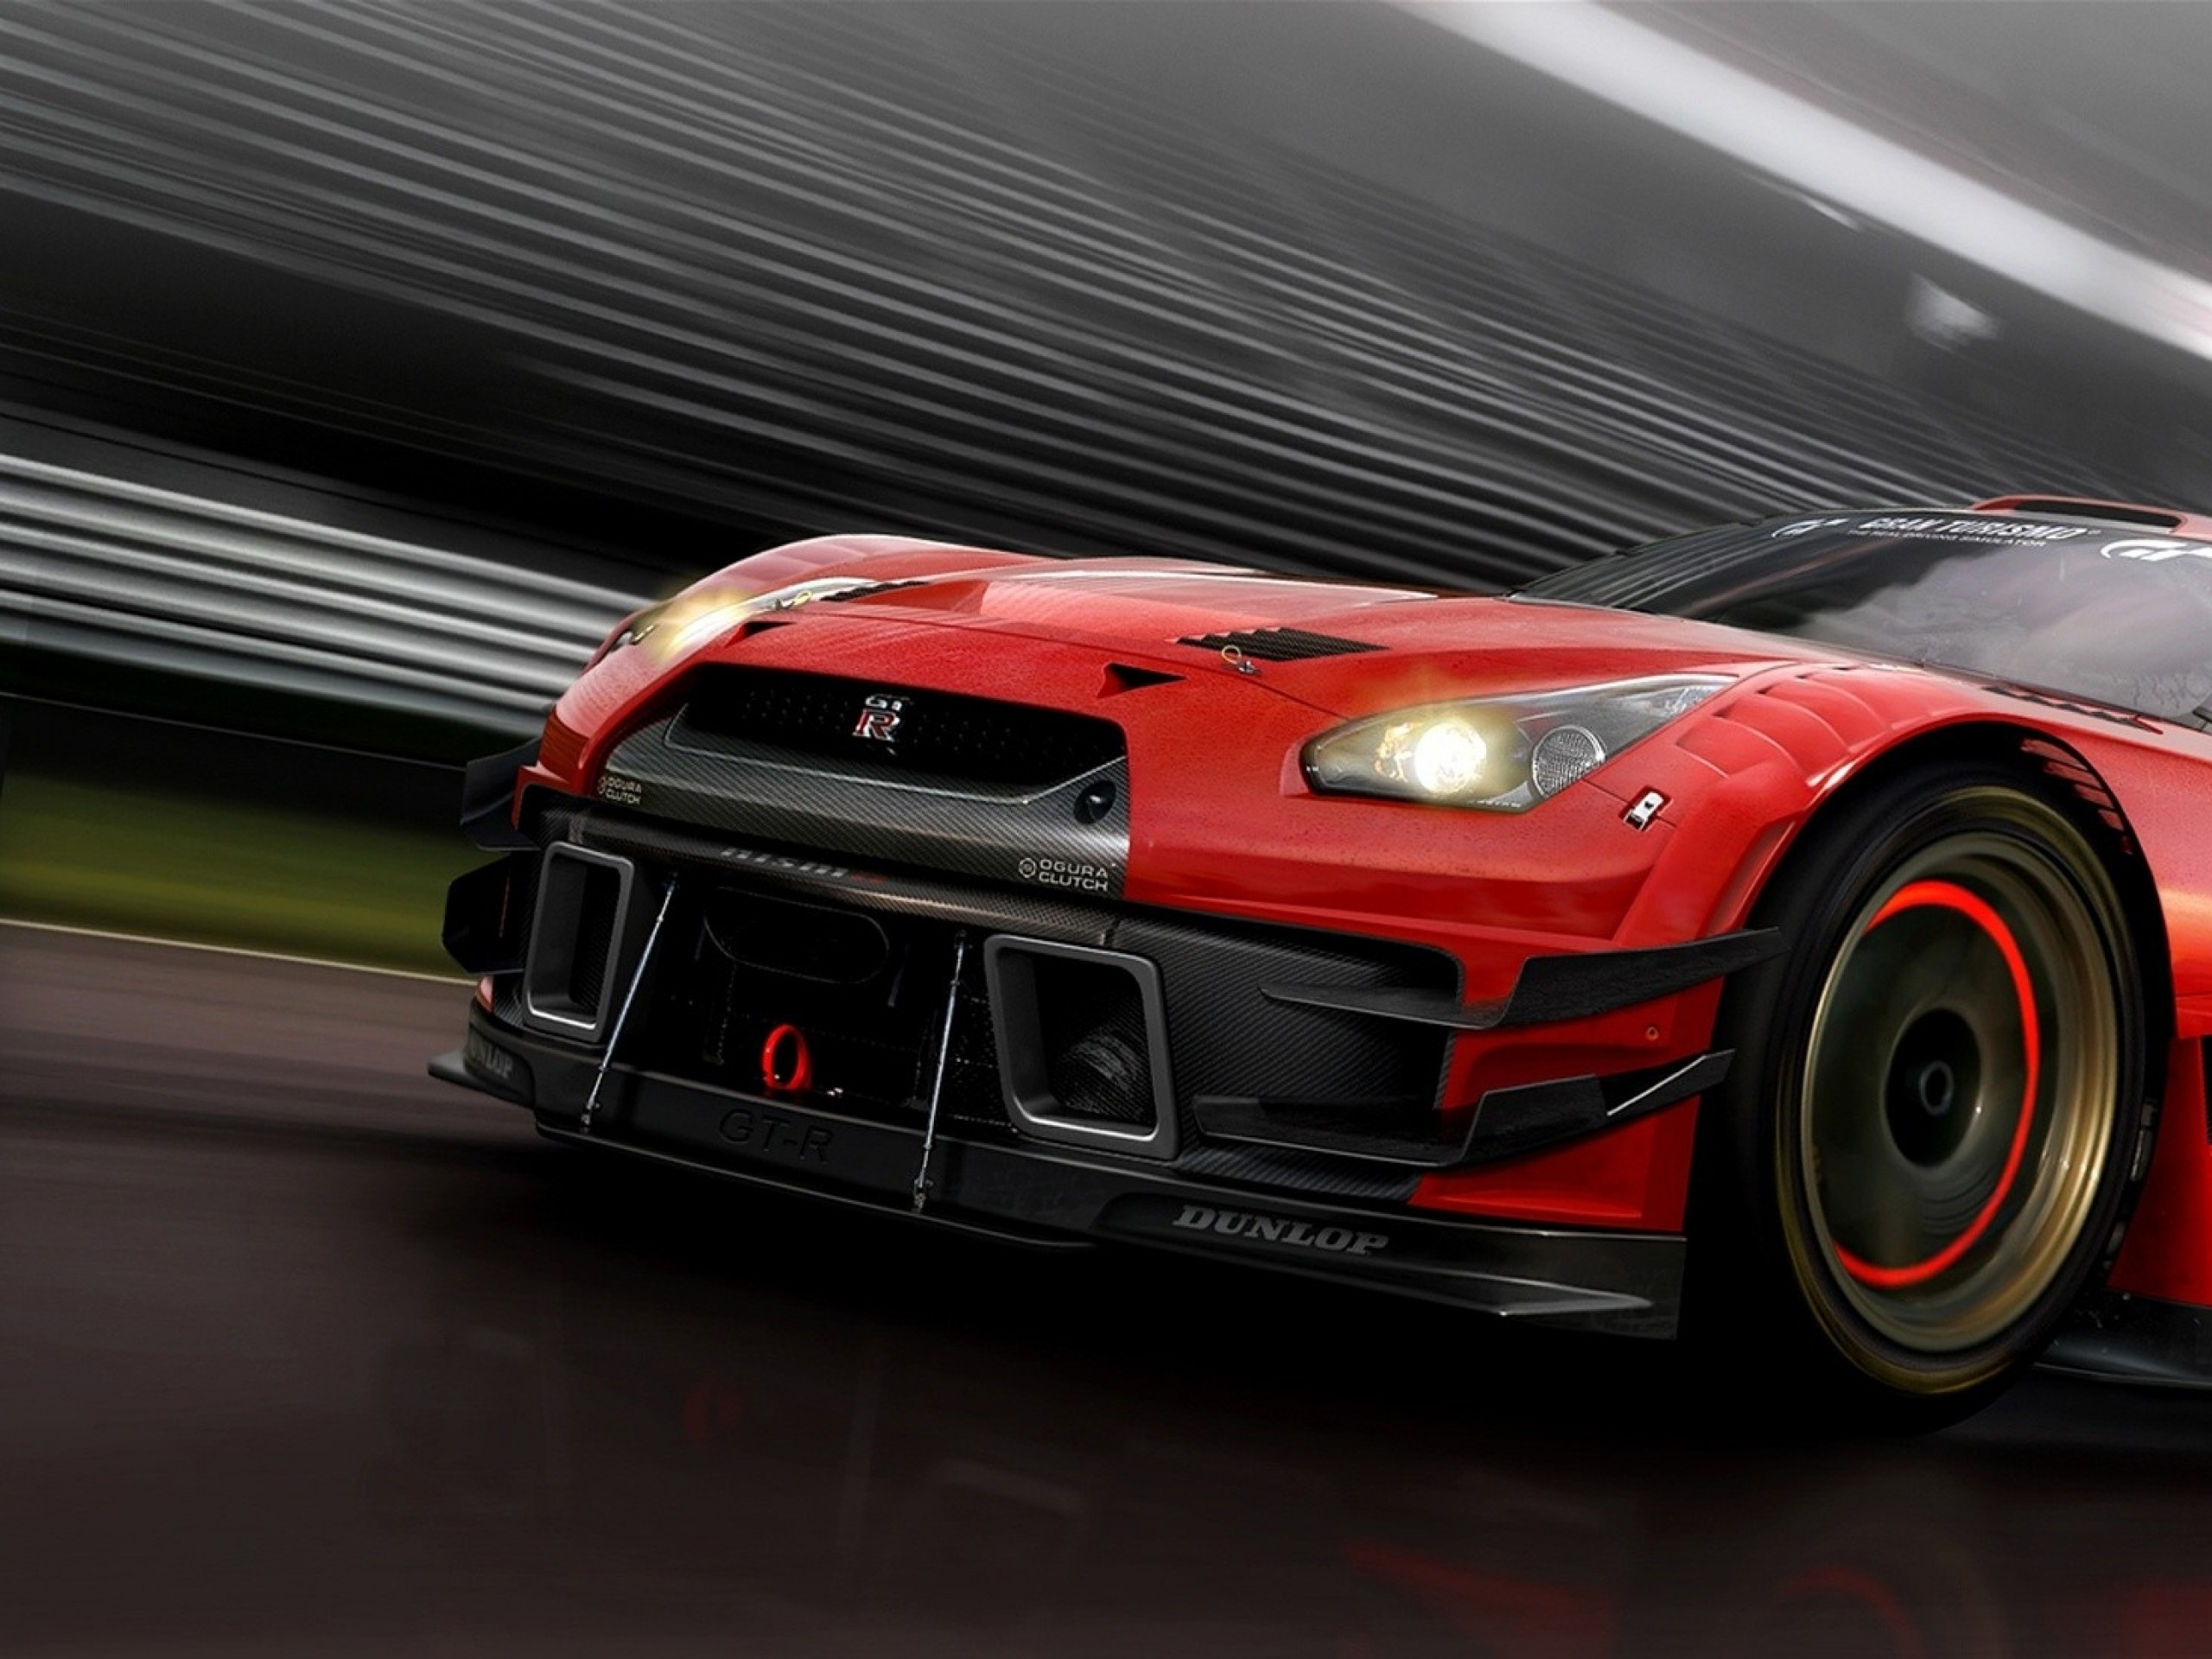 Nissan GTR sport car on nice wallpapers #nissangtr #hdwallpapers  www.yours-cars